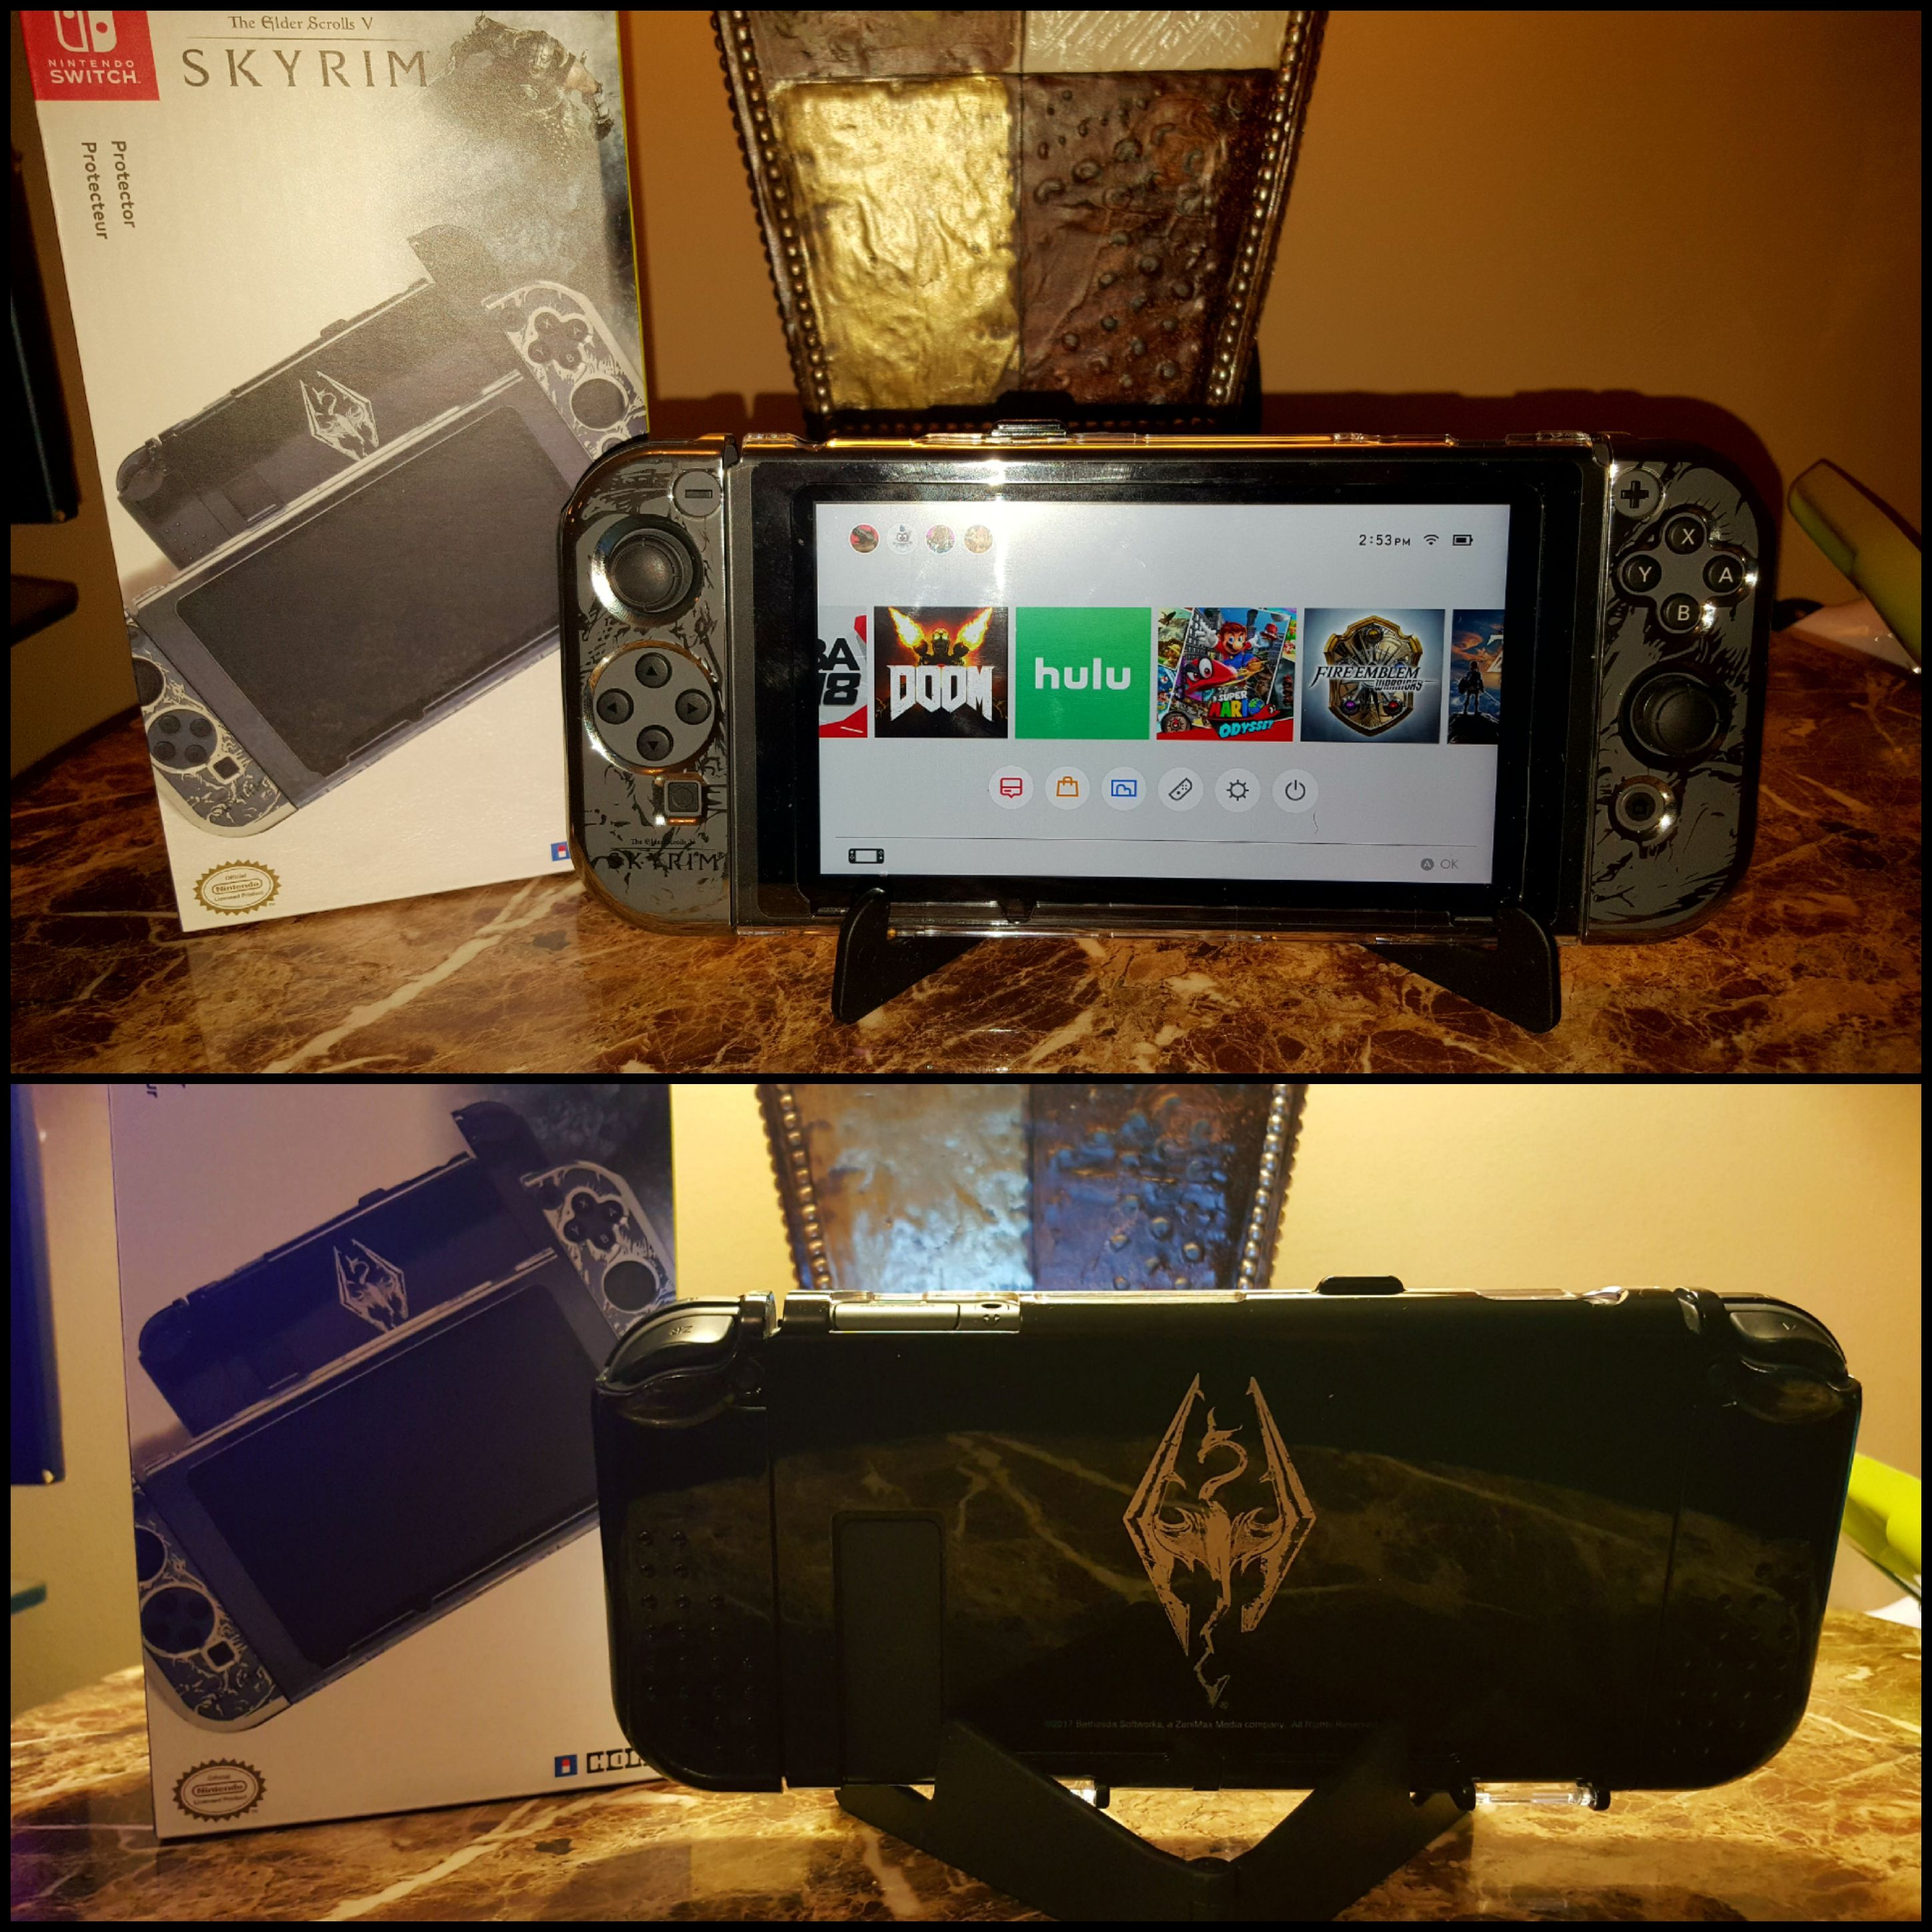 I got the Gamestop exclusive Skyrim case for the Switch today (plastic black stand is included) http://bit.ly/2lnzap3 #nintendo